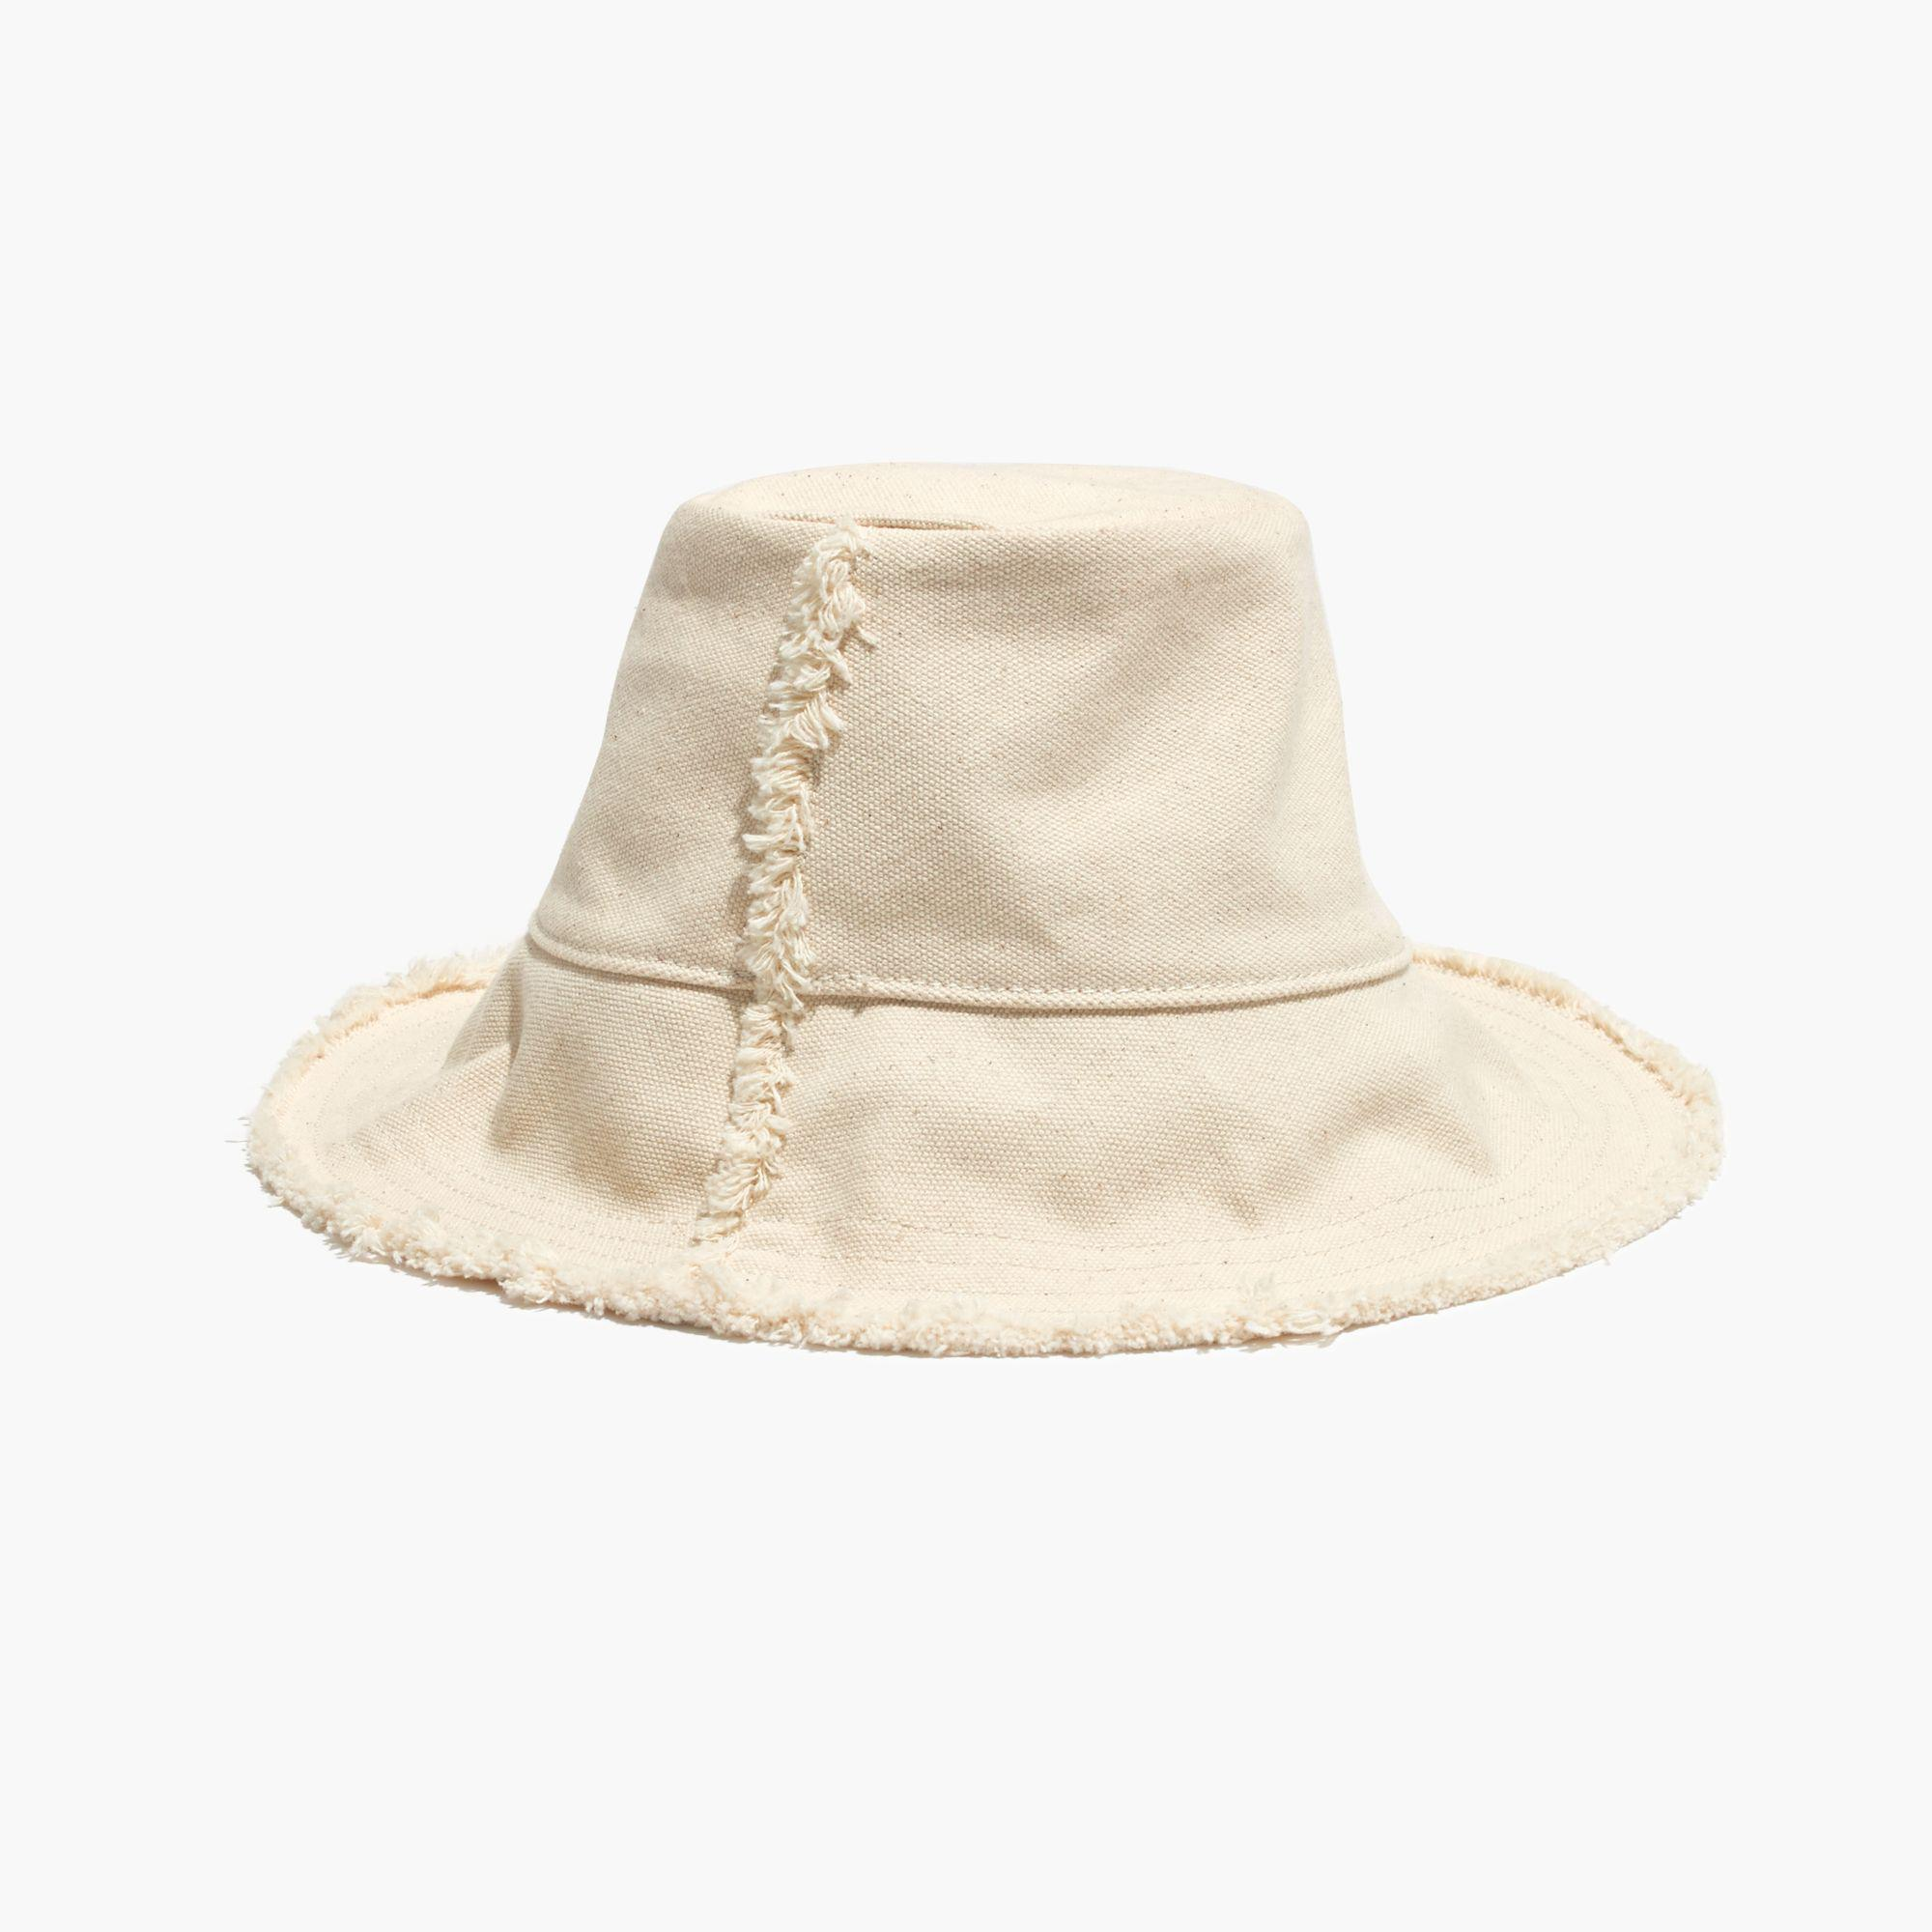 7df8fa938c611 Madewell Canvas Bucket Hat in Natural - Lyst